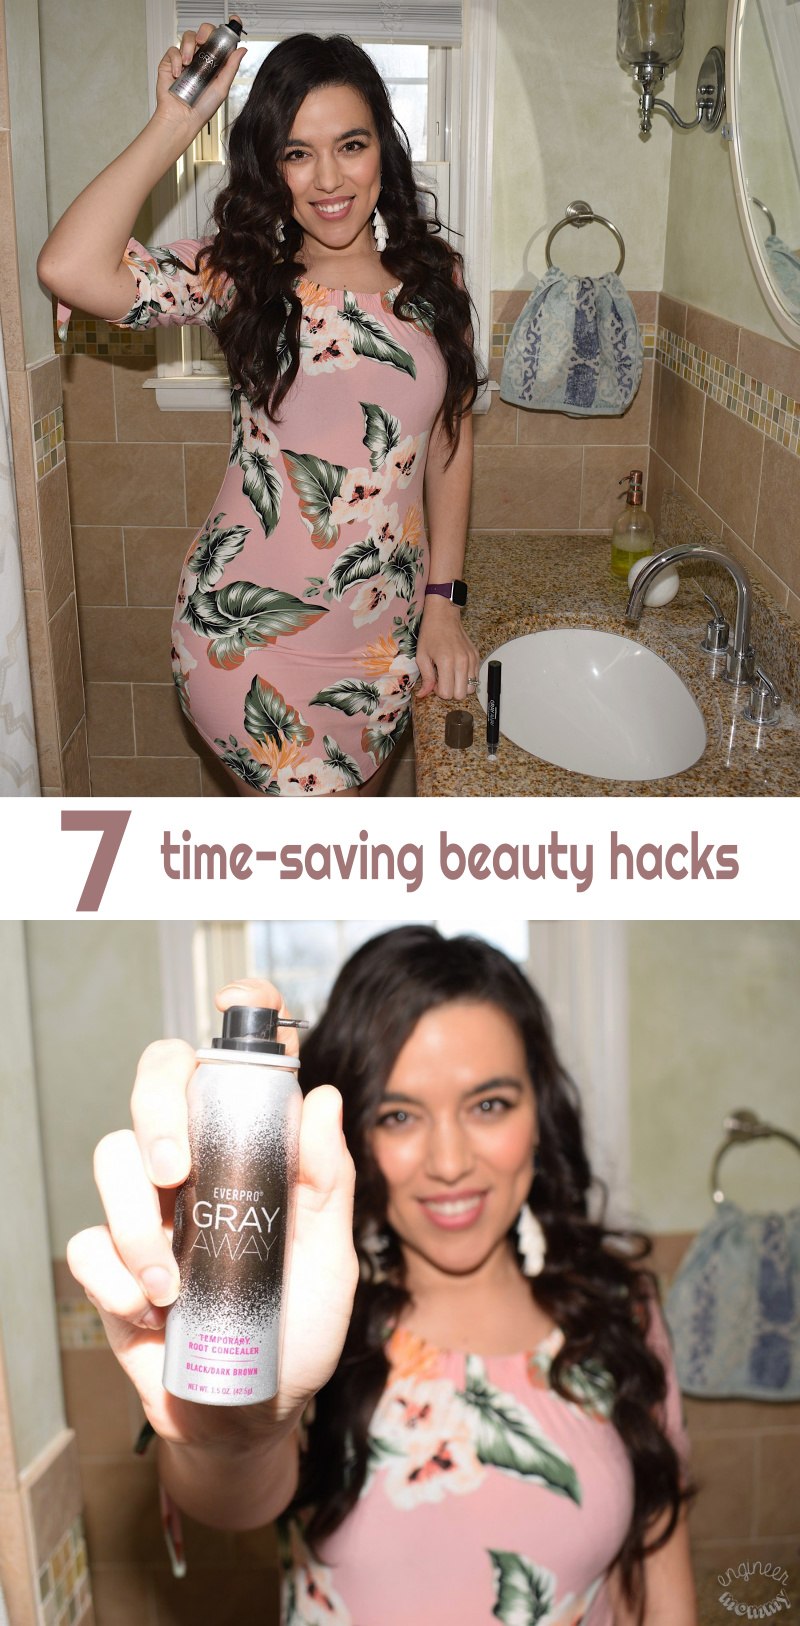 7 Time-Saving Beauty Tips for Smoother Mornings